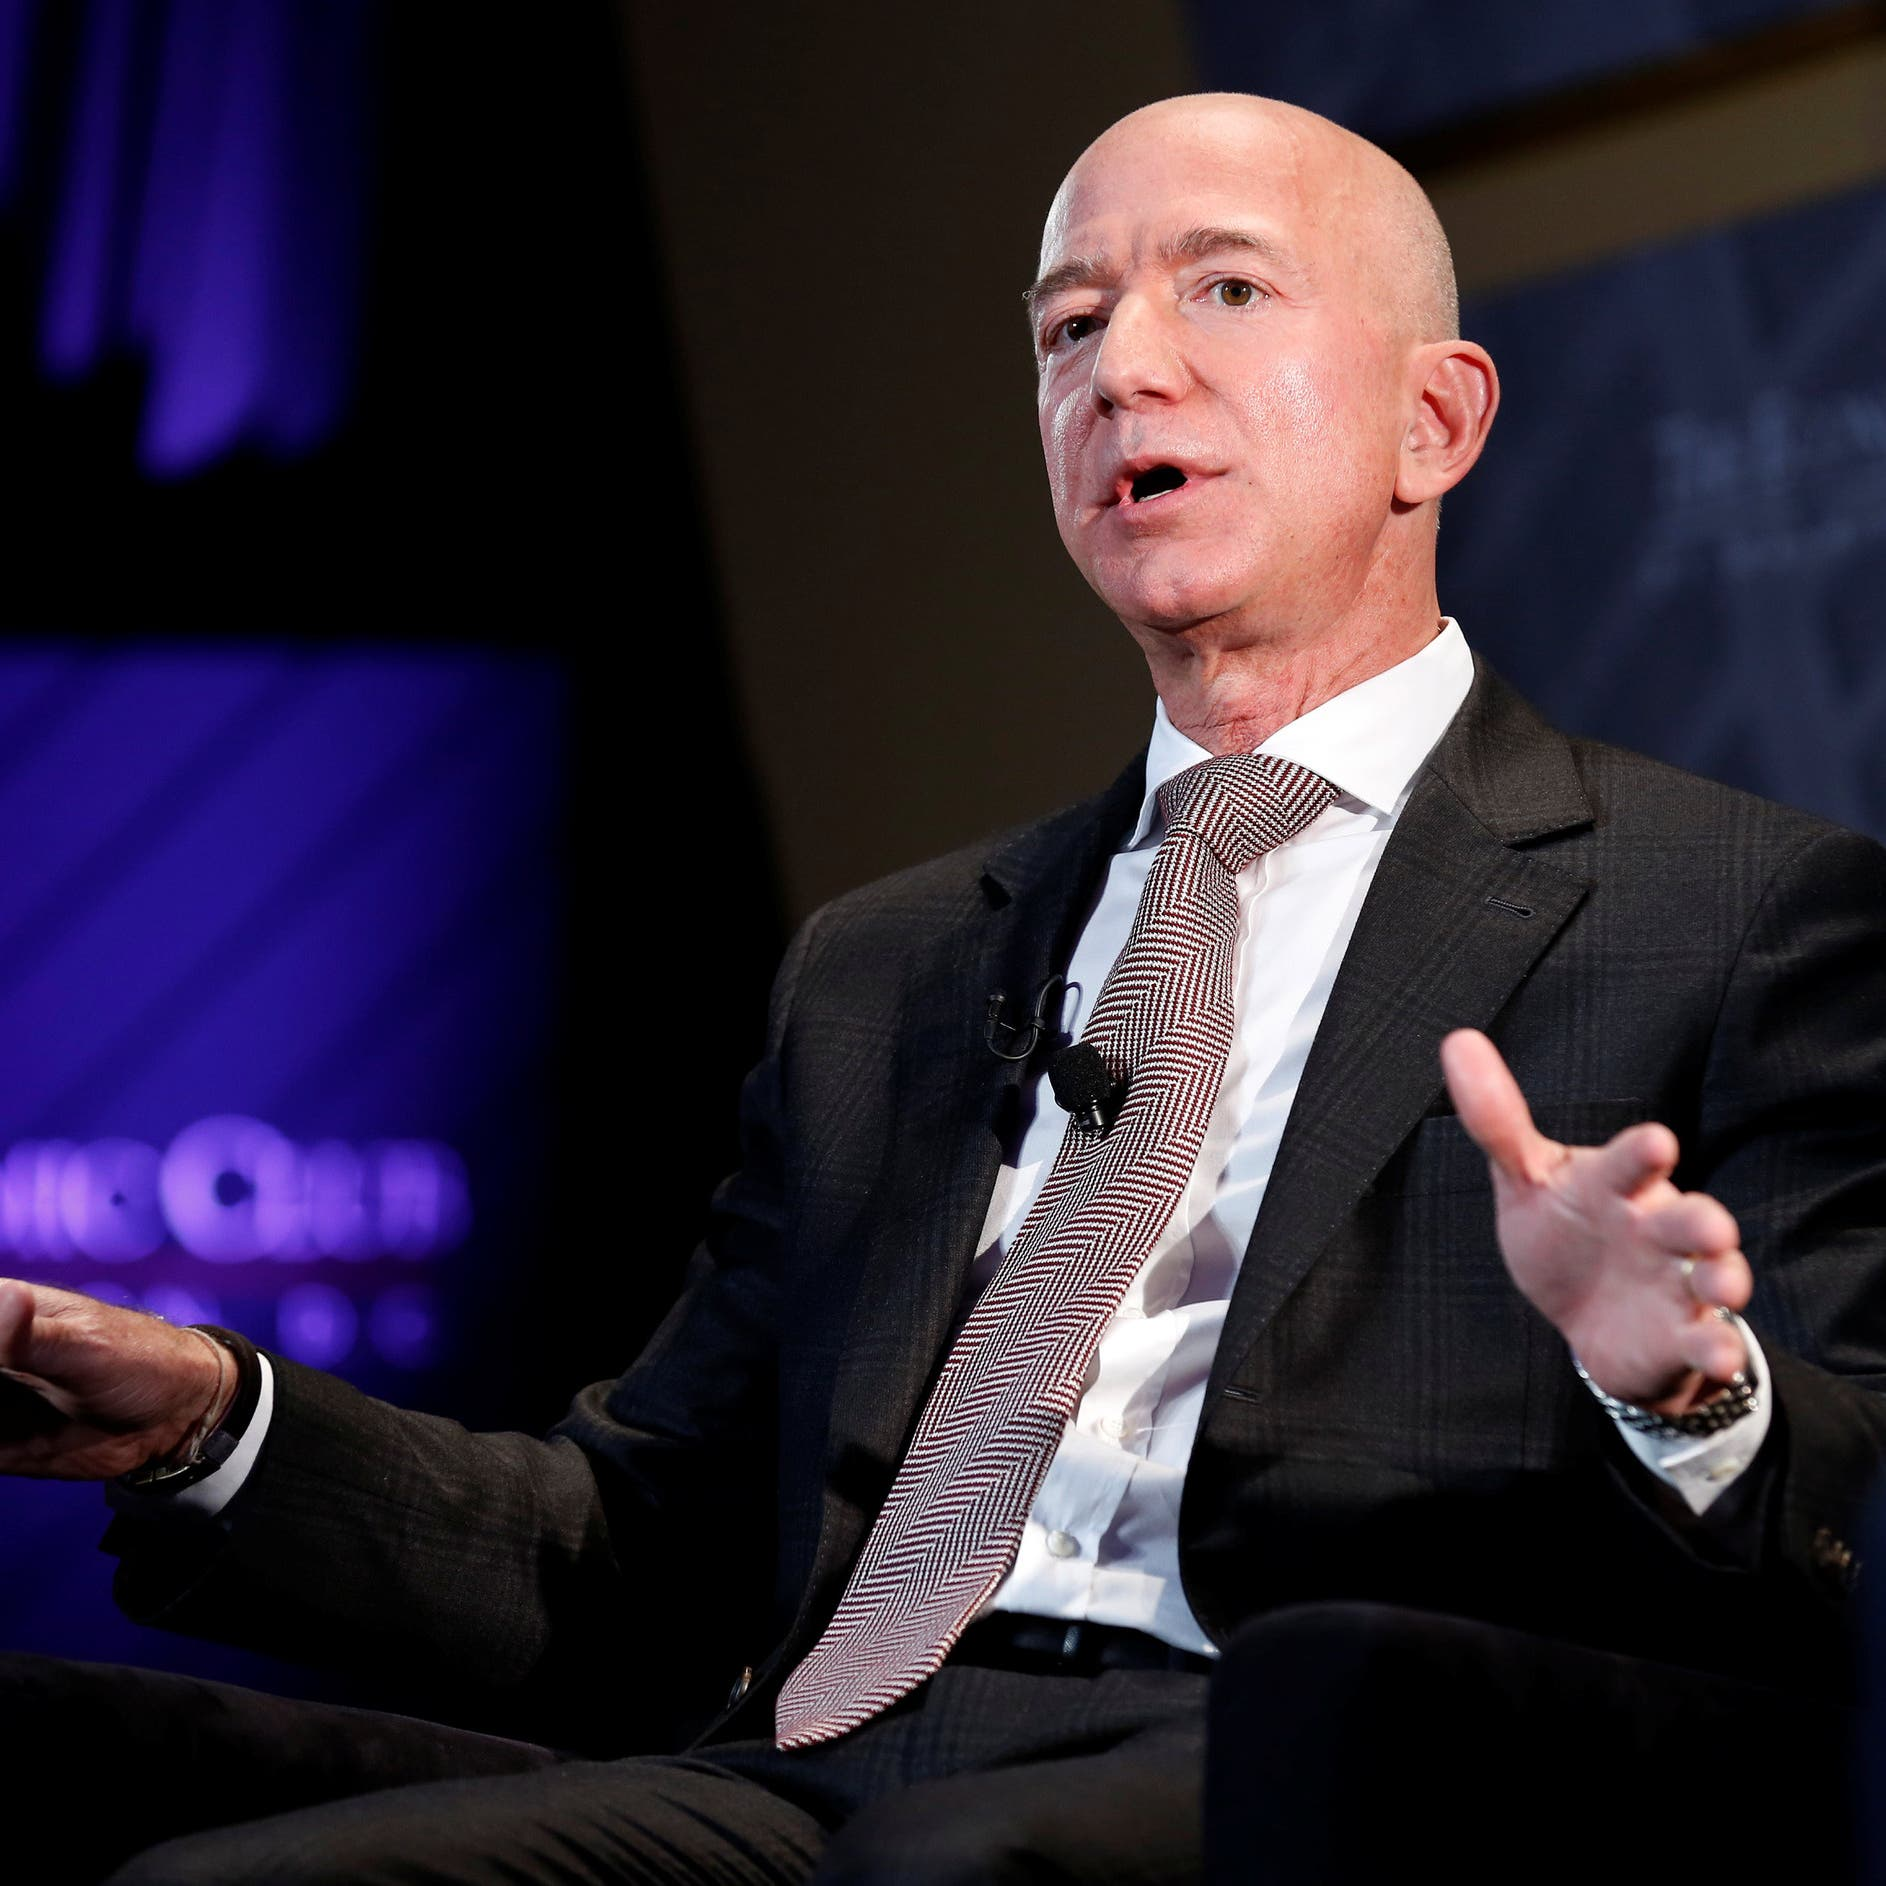 Bezos sells $2.4 bln of Amazon stock, bringing weekly shares sold to about $5 bln